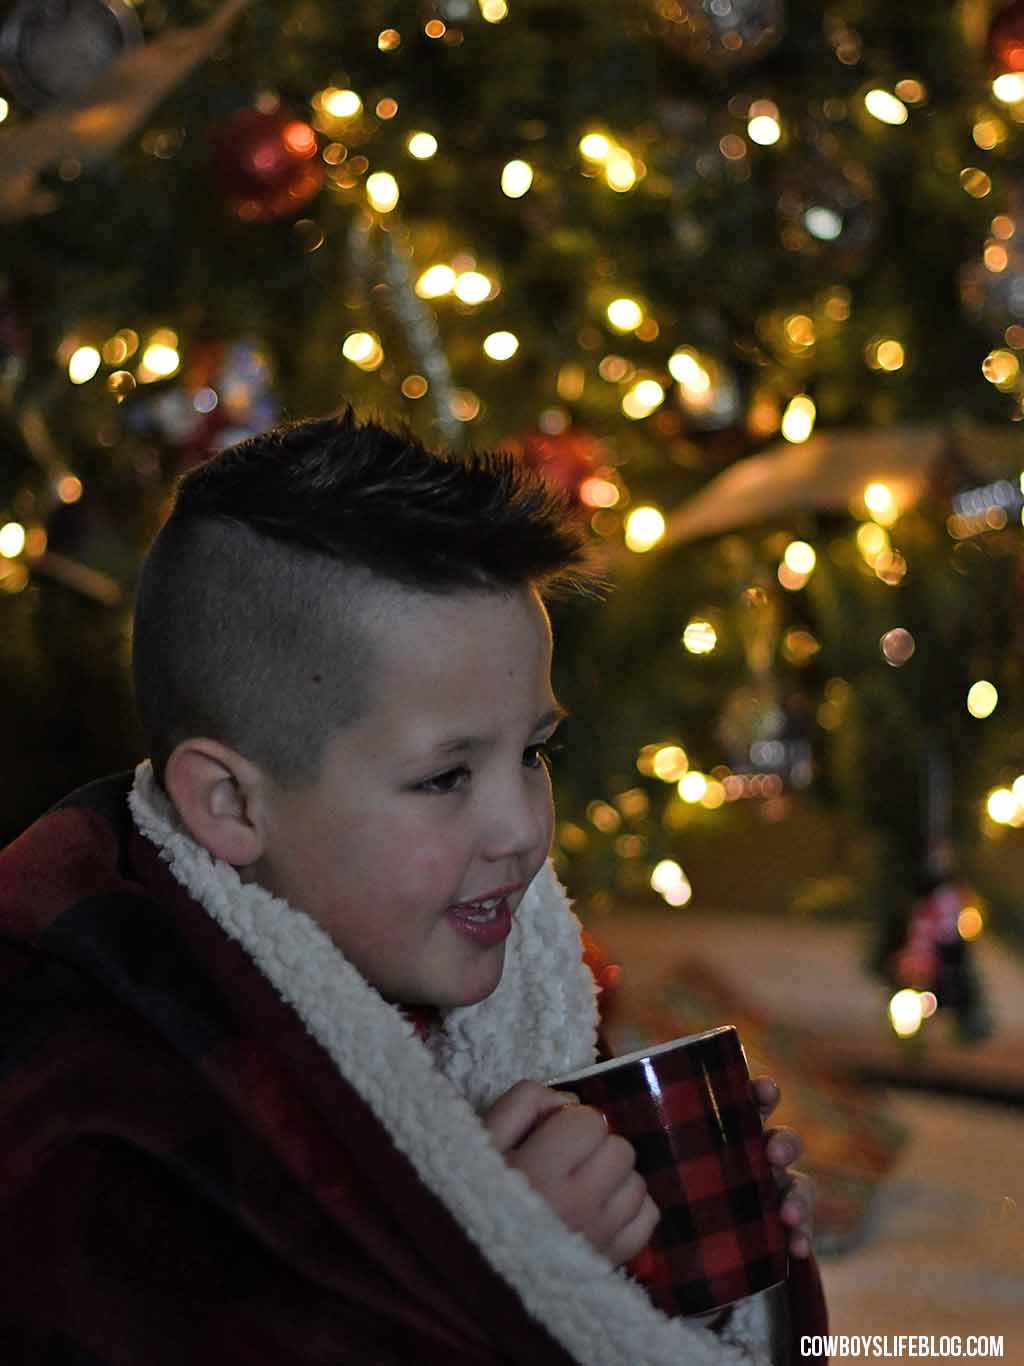 Steps to taking better holiday photos